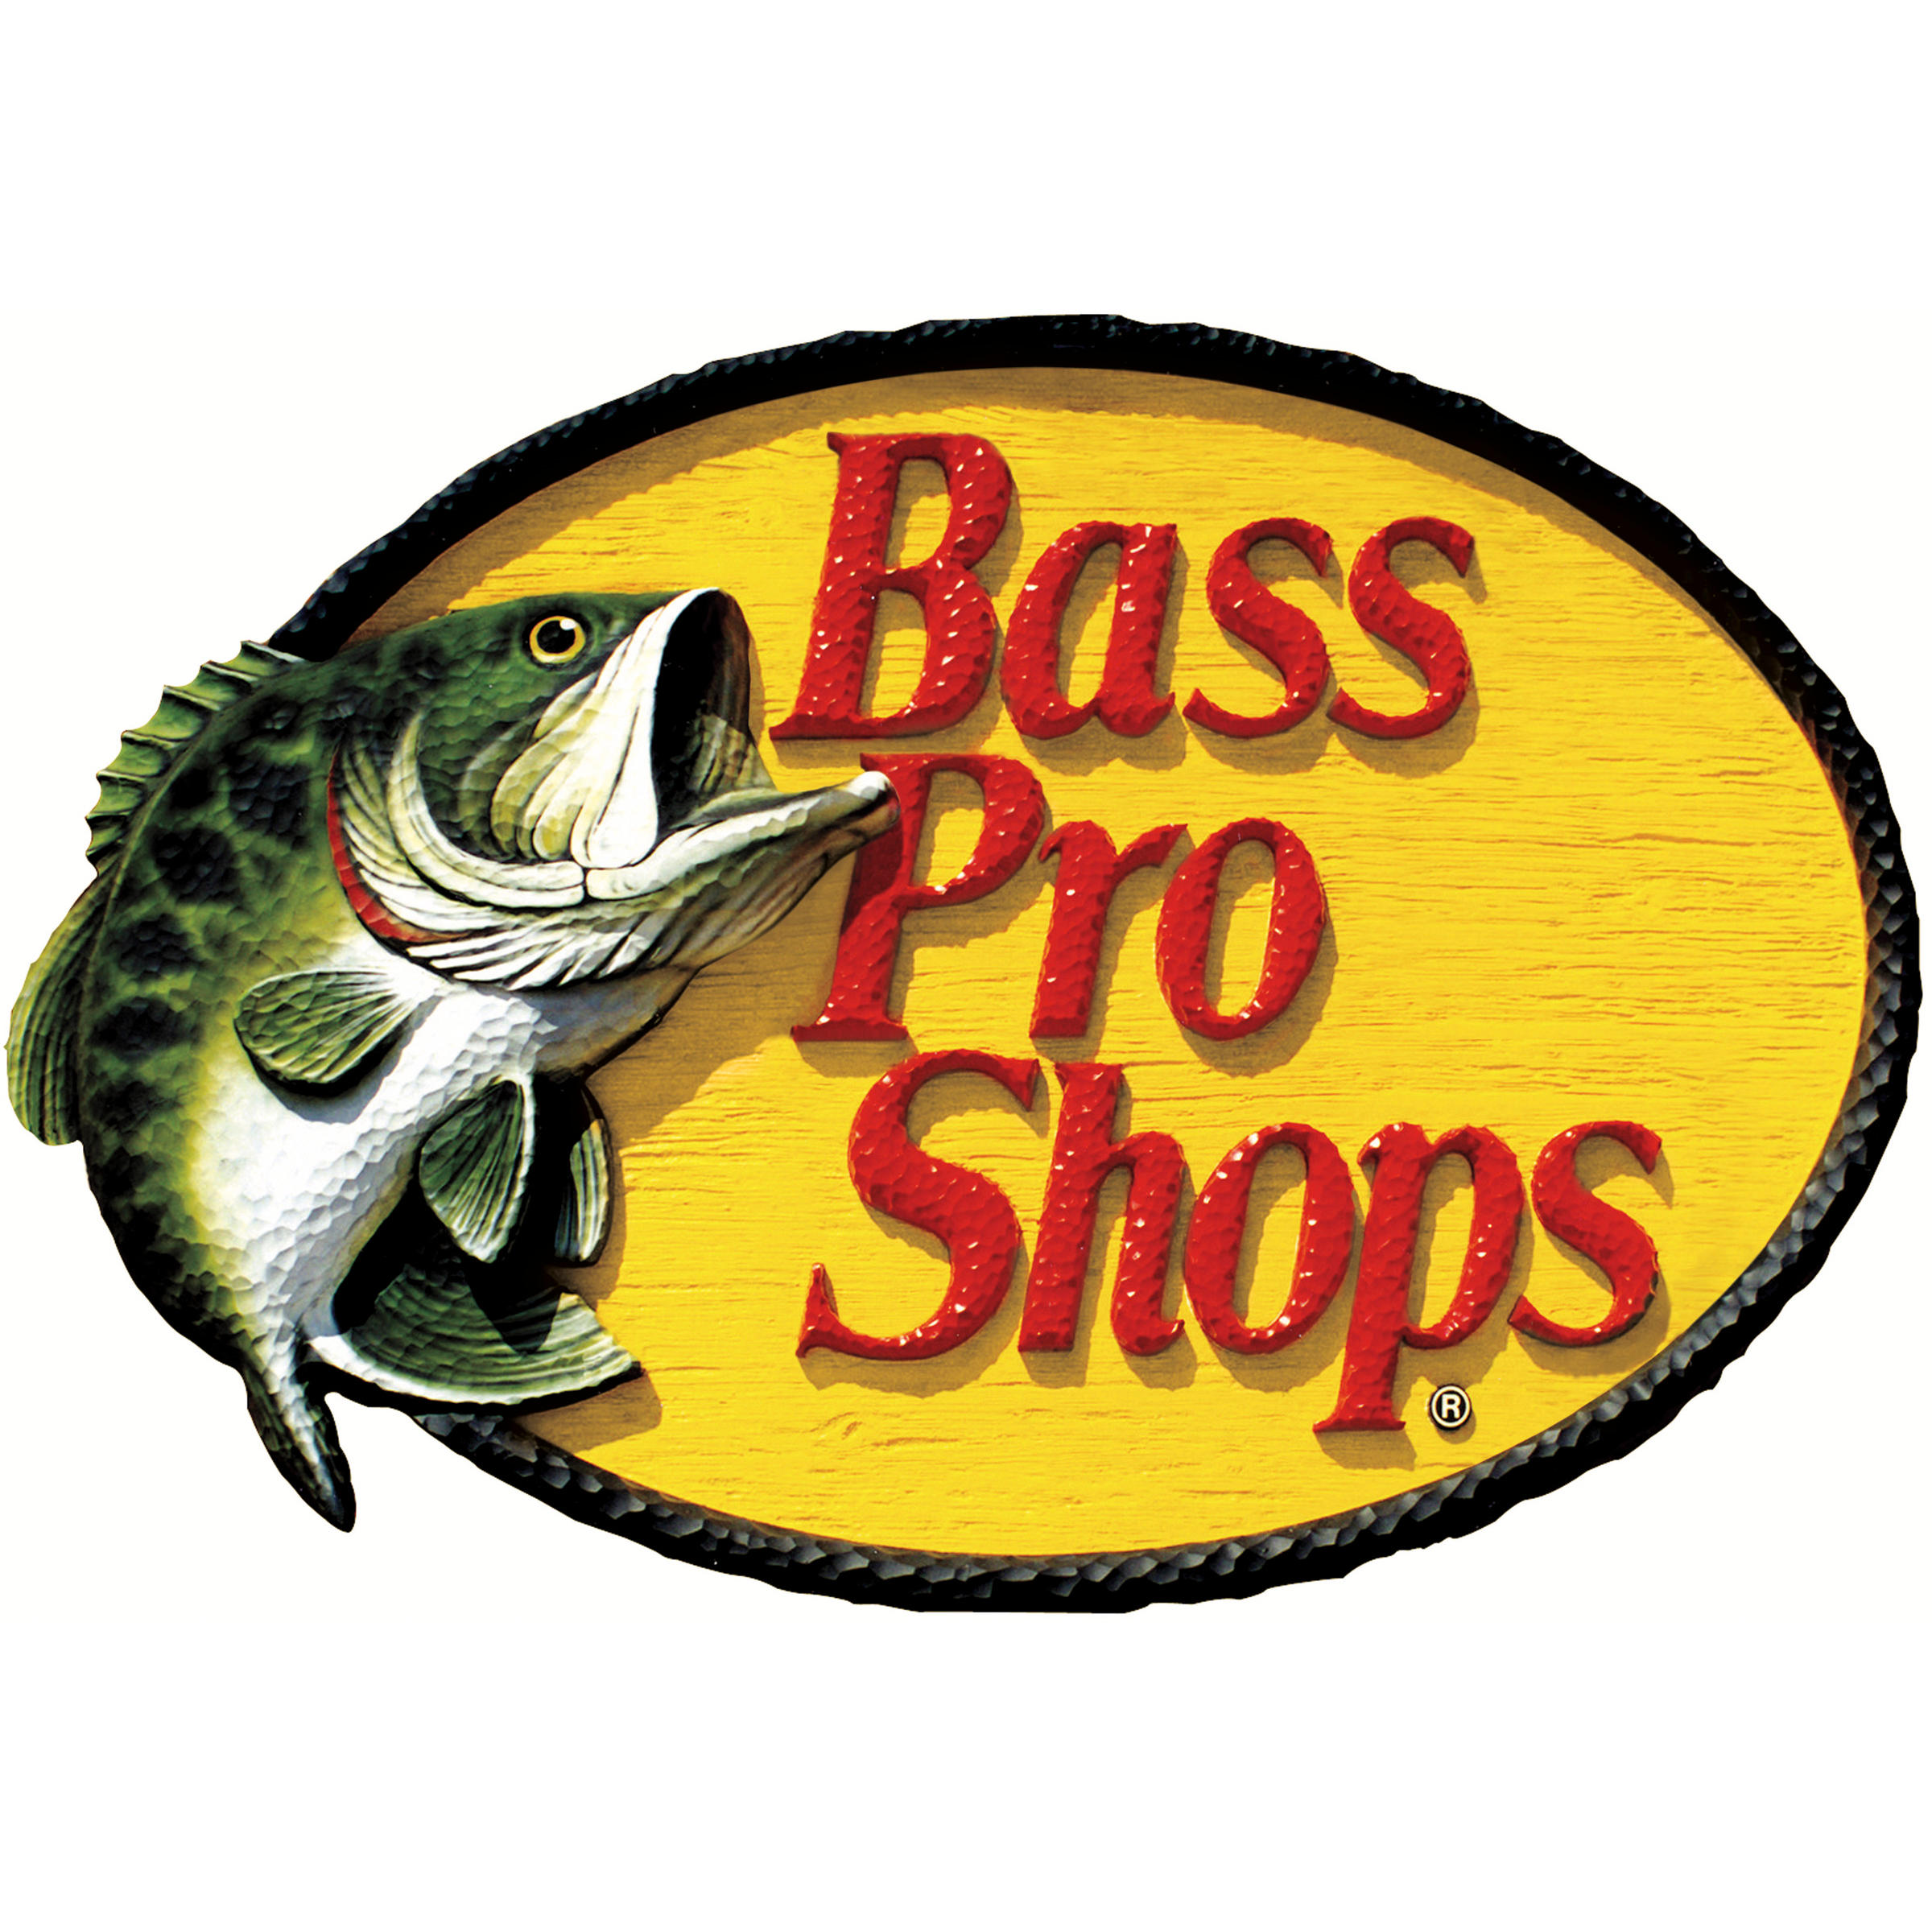 Bass Pro Shops - Dania Beach, FL - Sporting Goods Stores